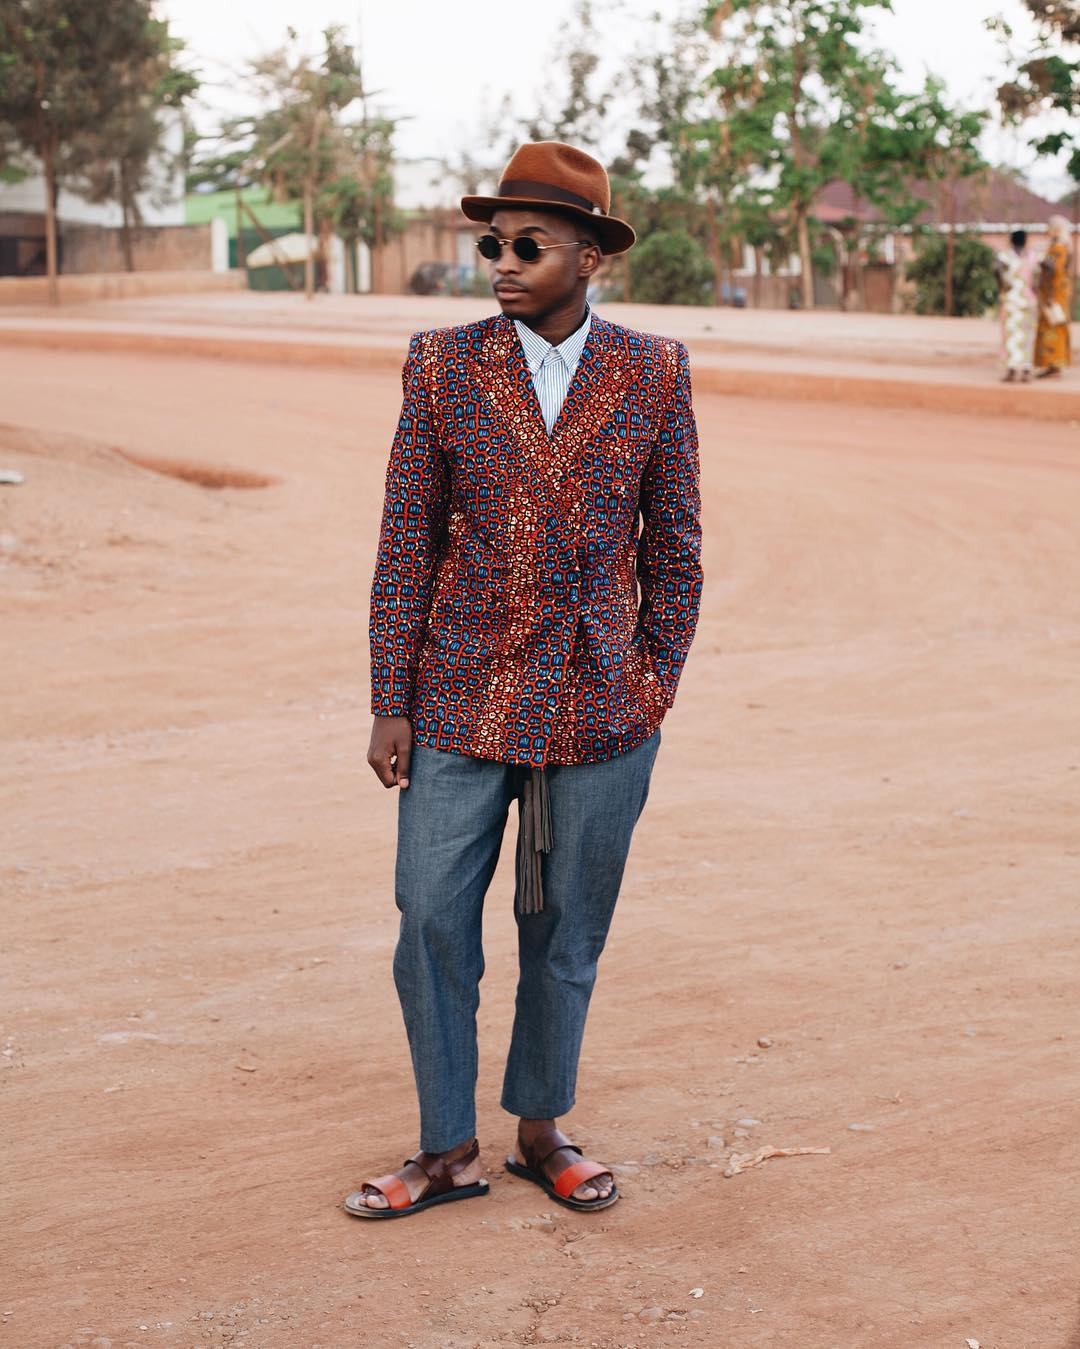 ankara-street-style-of-the-day-trevor-stuurman-1